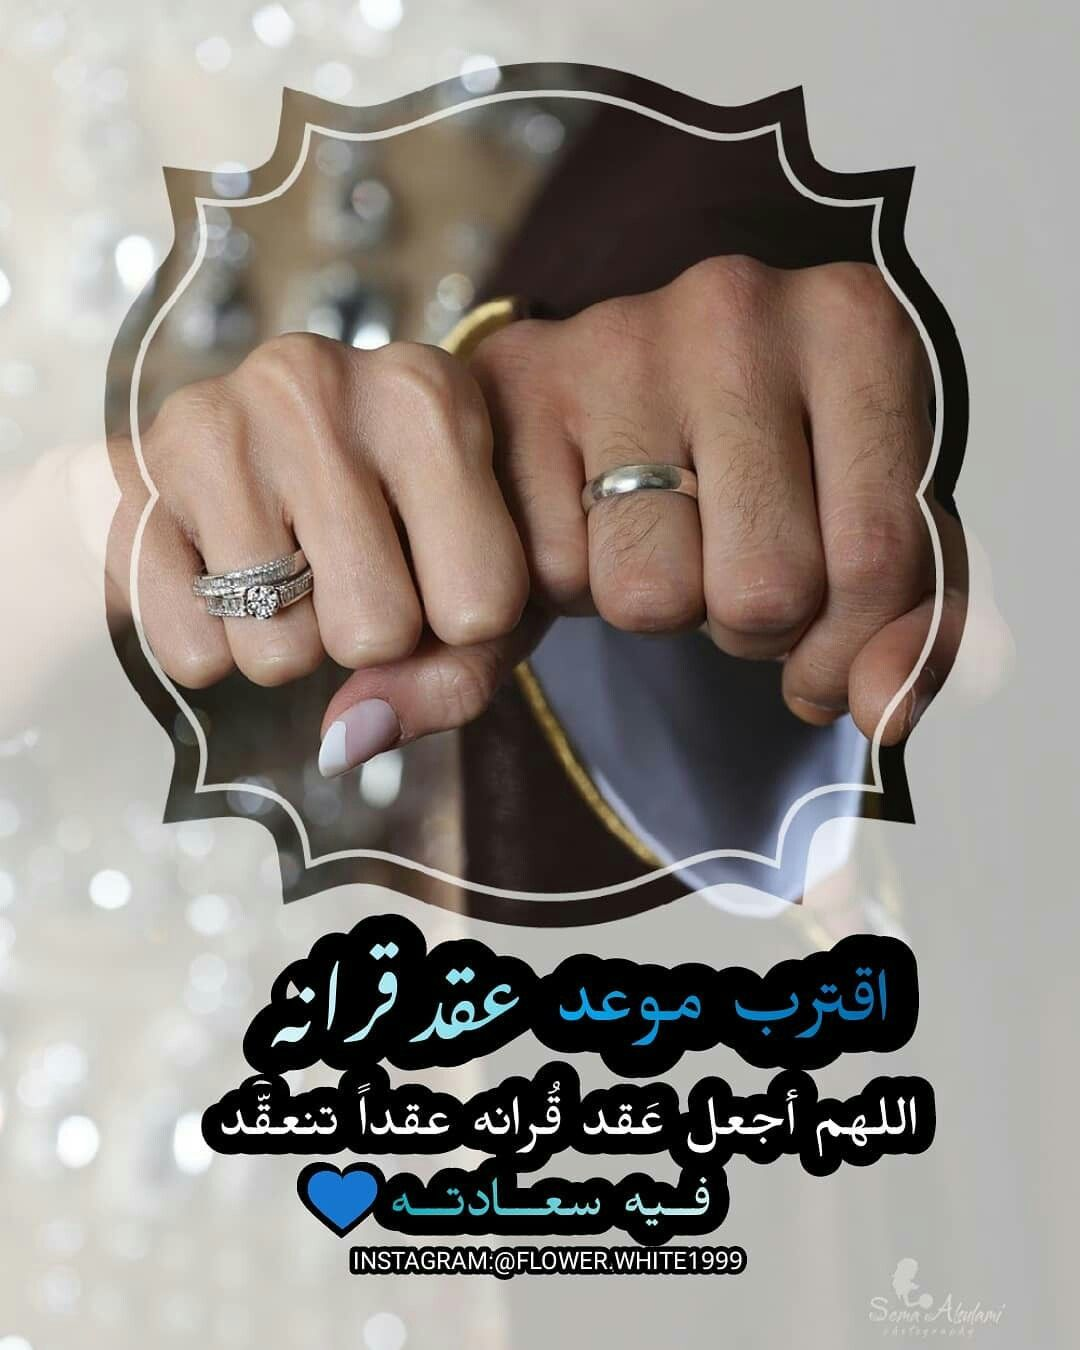 Pin By Senyourita On تصاميم و تهاني In 2021 Birthday Surprise For Husband Birthday Morning Surprise Happy Birthday Husband